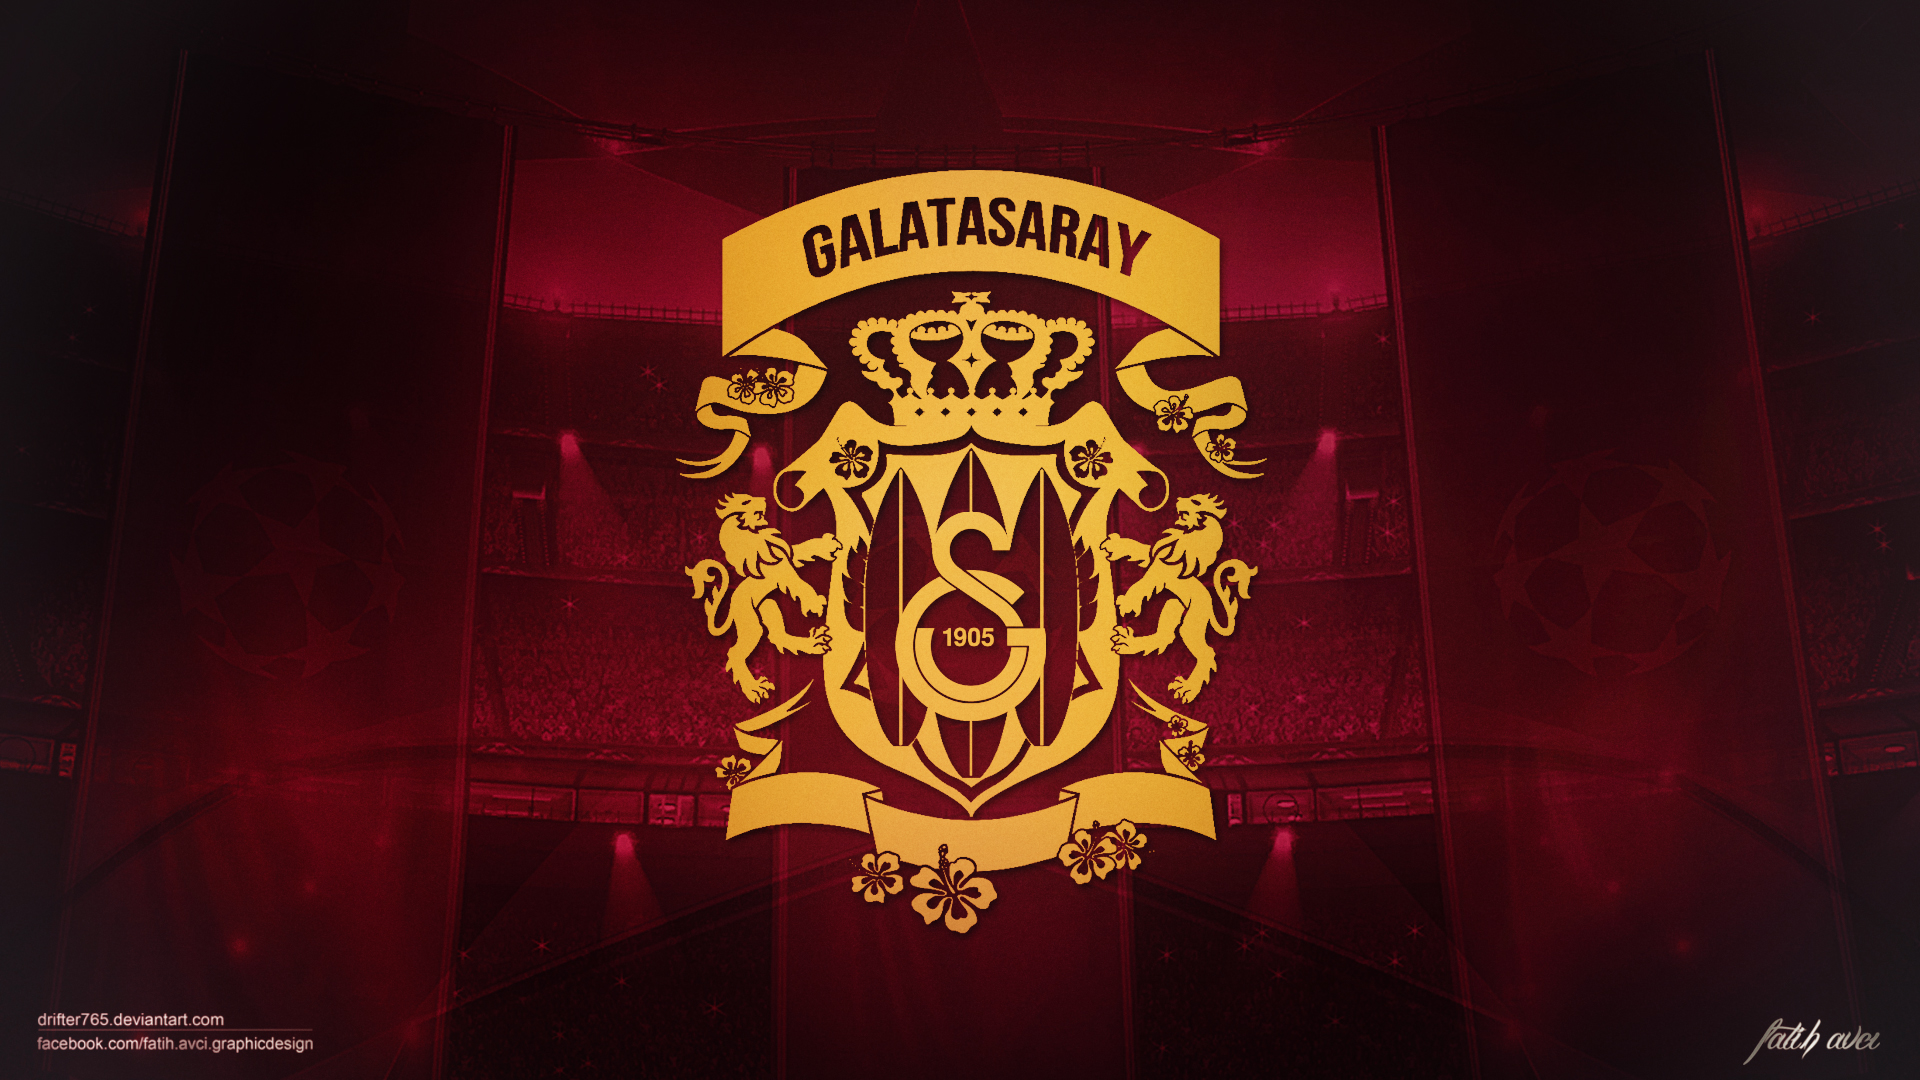 Galatasaray Royalty by drifter765 on DeviantArt